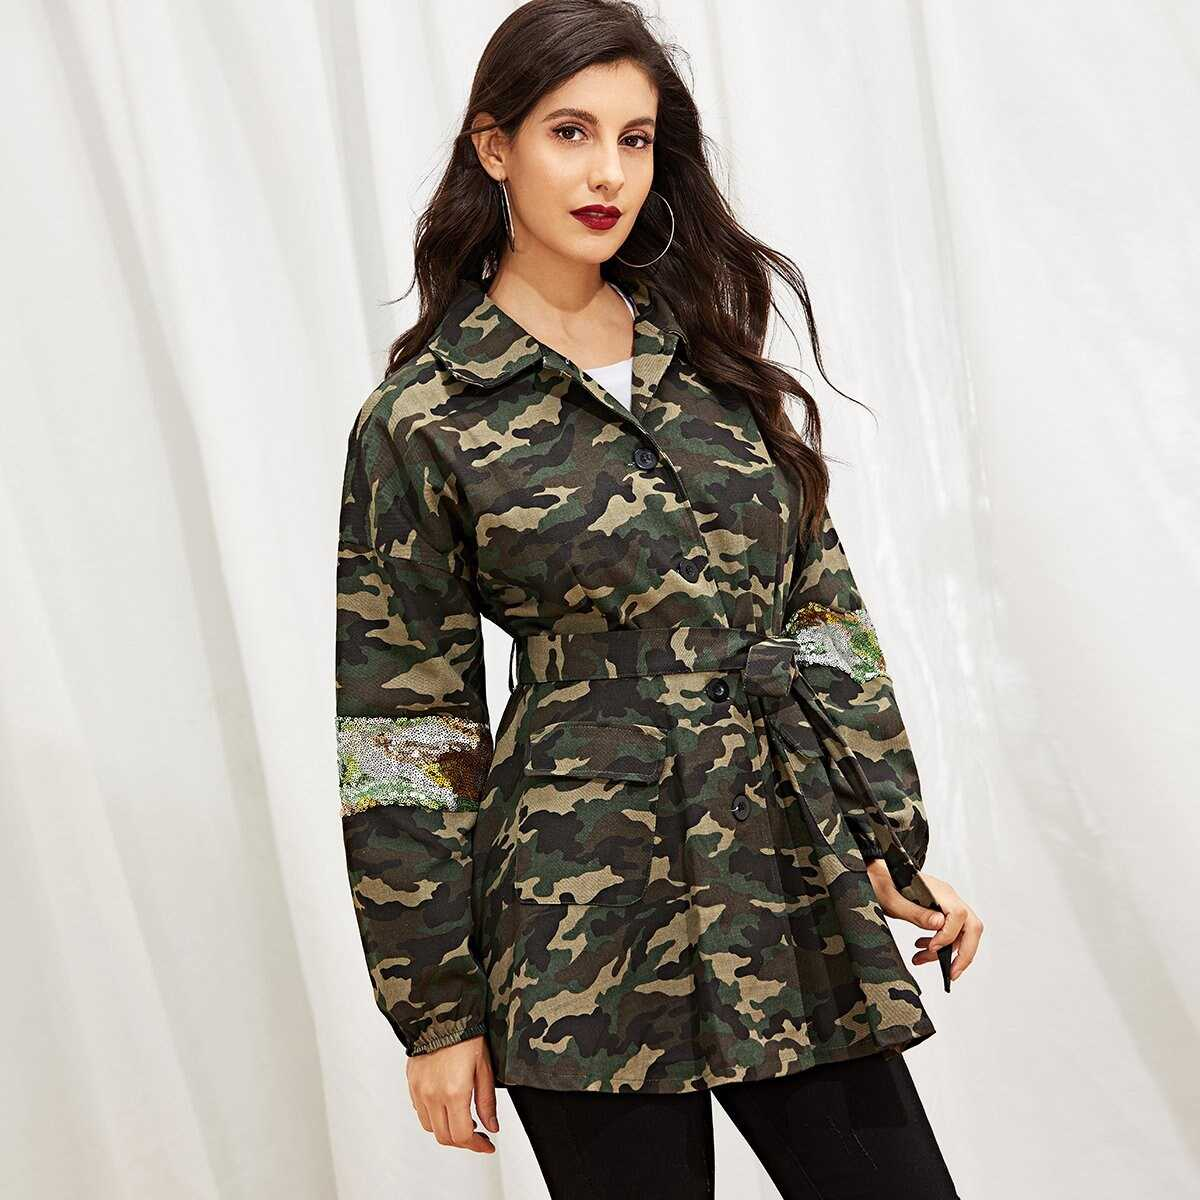 Camo Contrast Sequin Belted Drop Shoulder Outerwear - Shein - GOOFASH